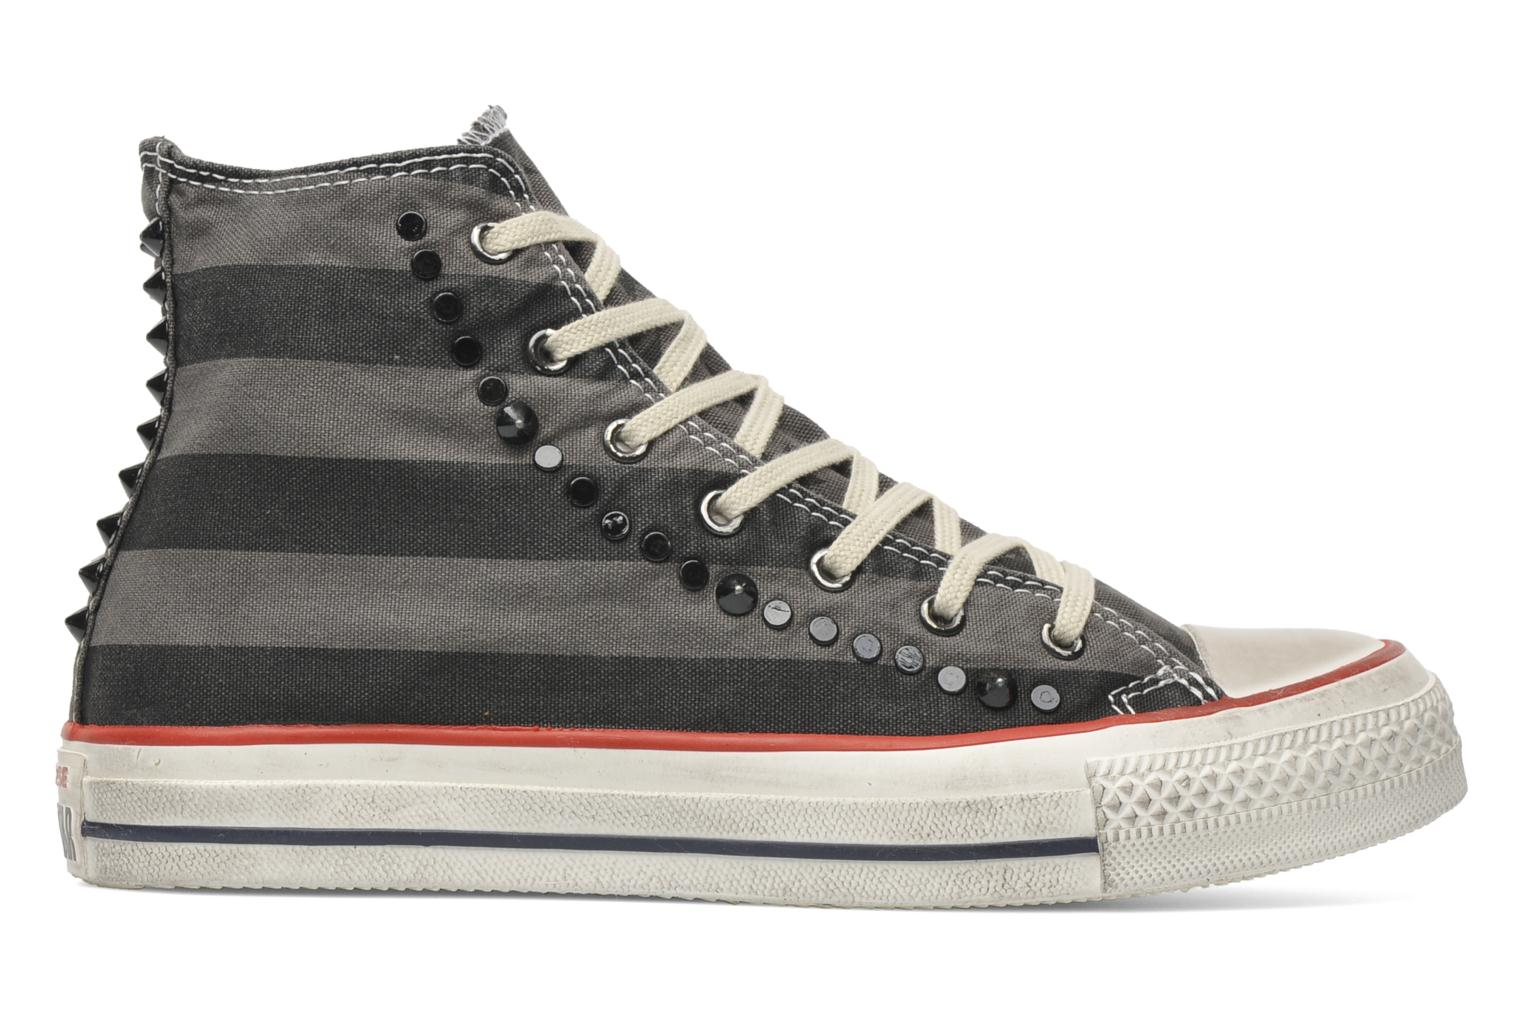 Baskets Converse Chuck Taylor All Star Well Worn Studs Canvas Hi W Gris vue derrière